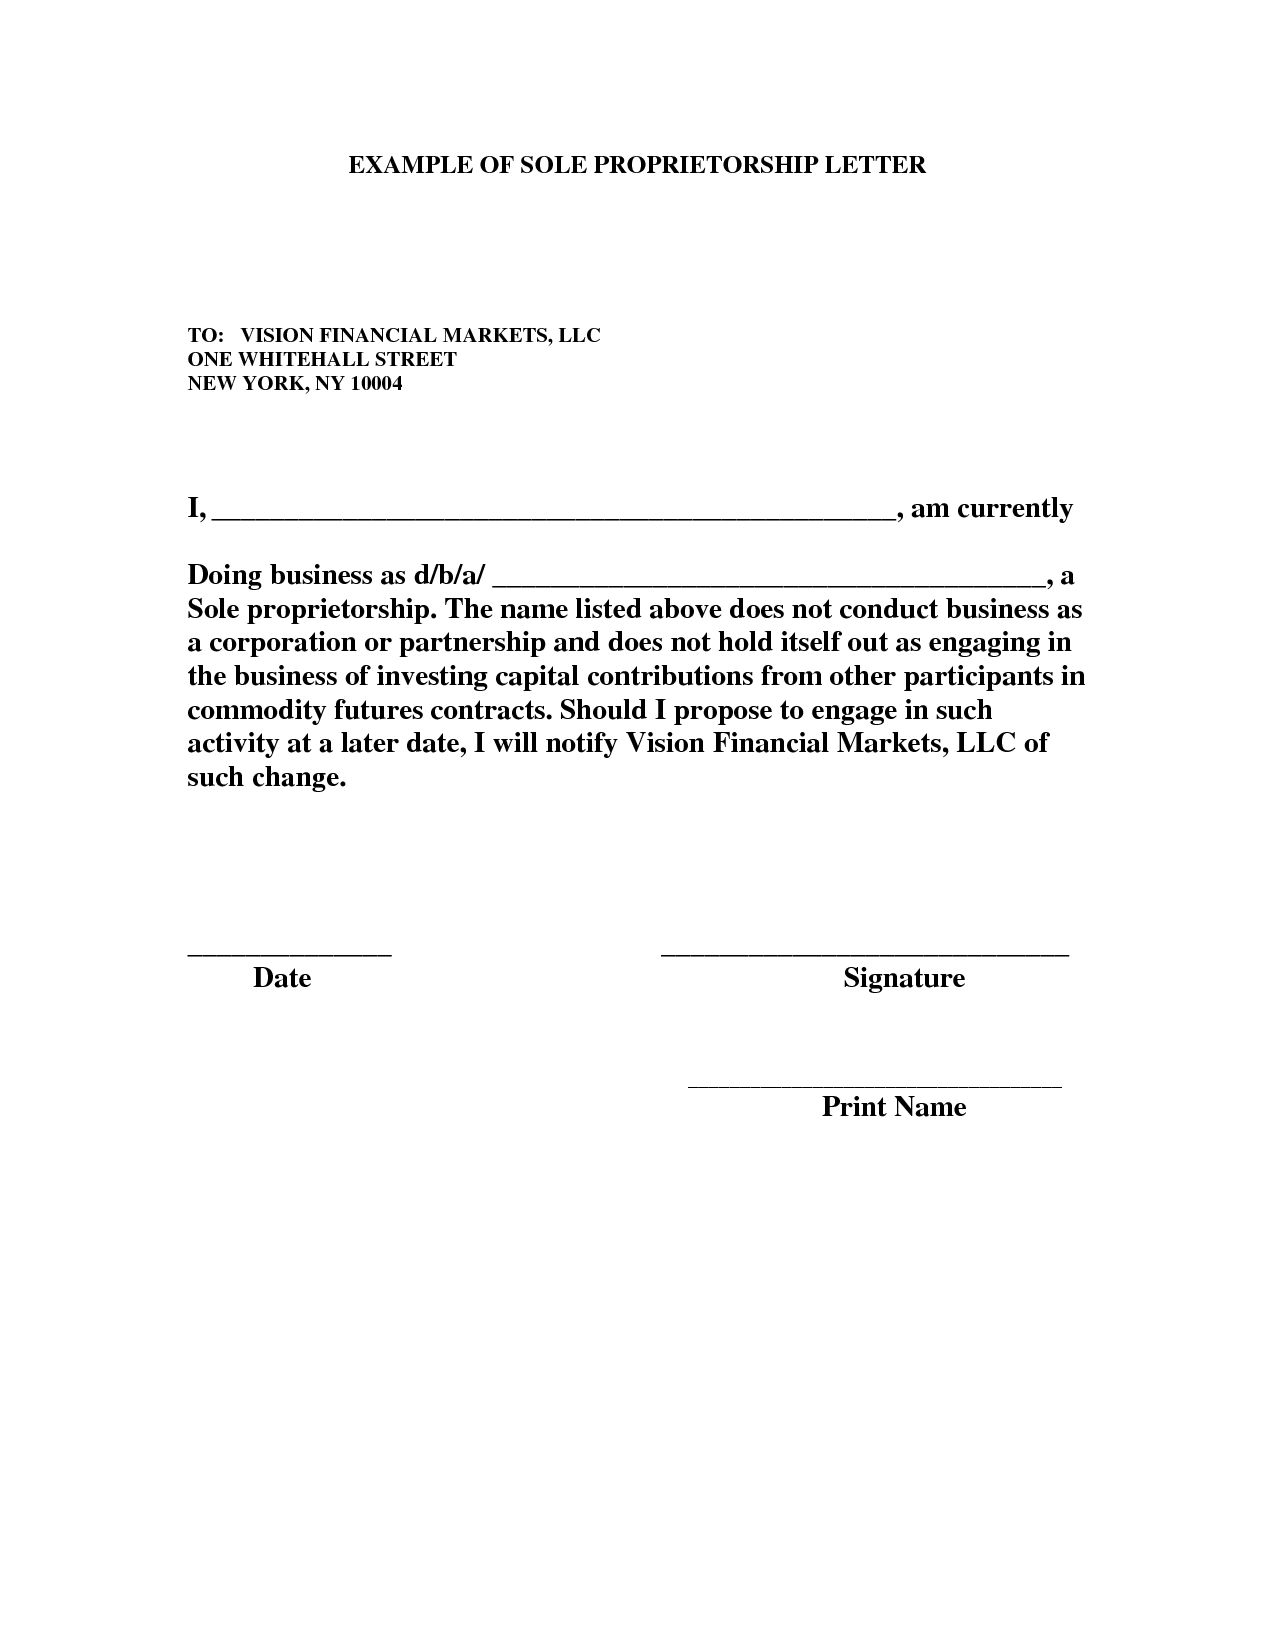 Fixed Income Trader Cover Letter | Job Employment Certificate Sample ...